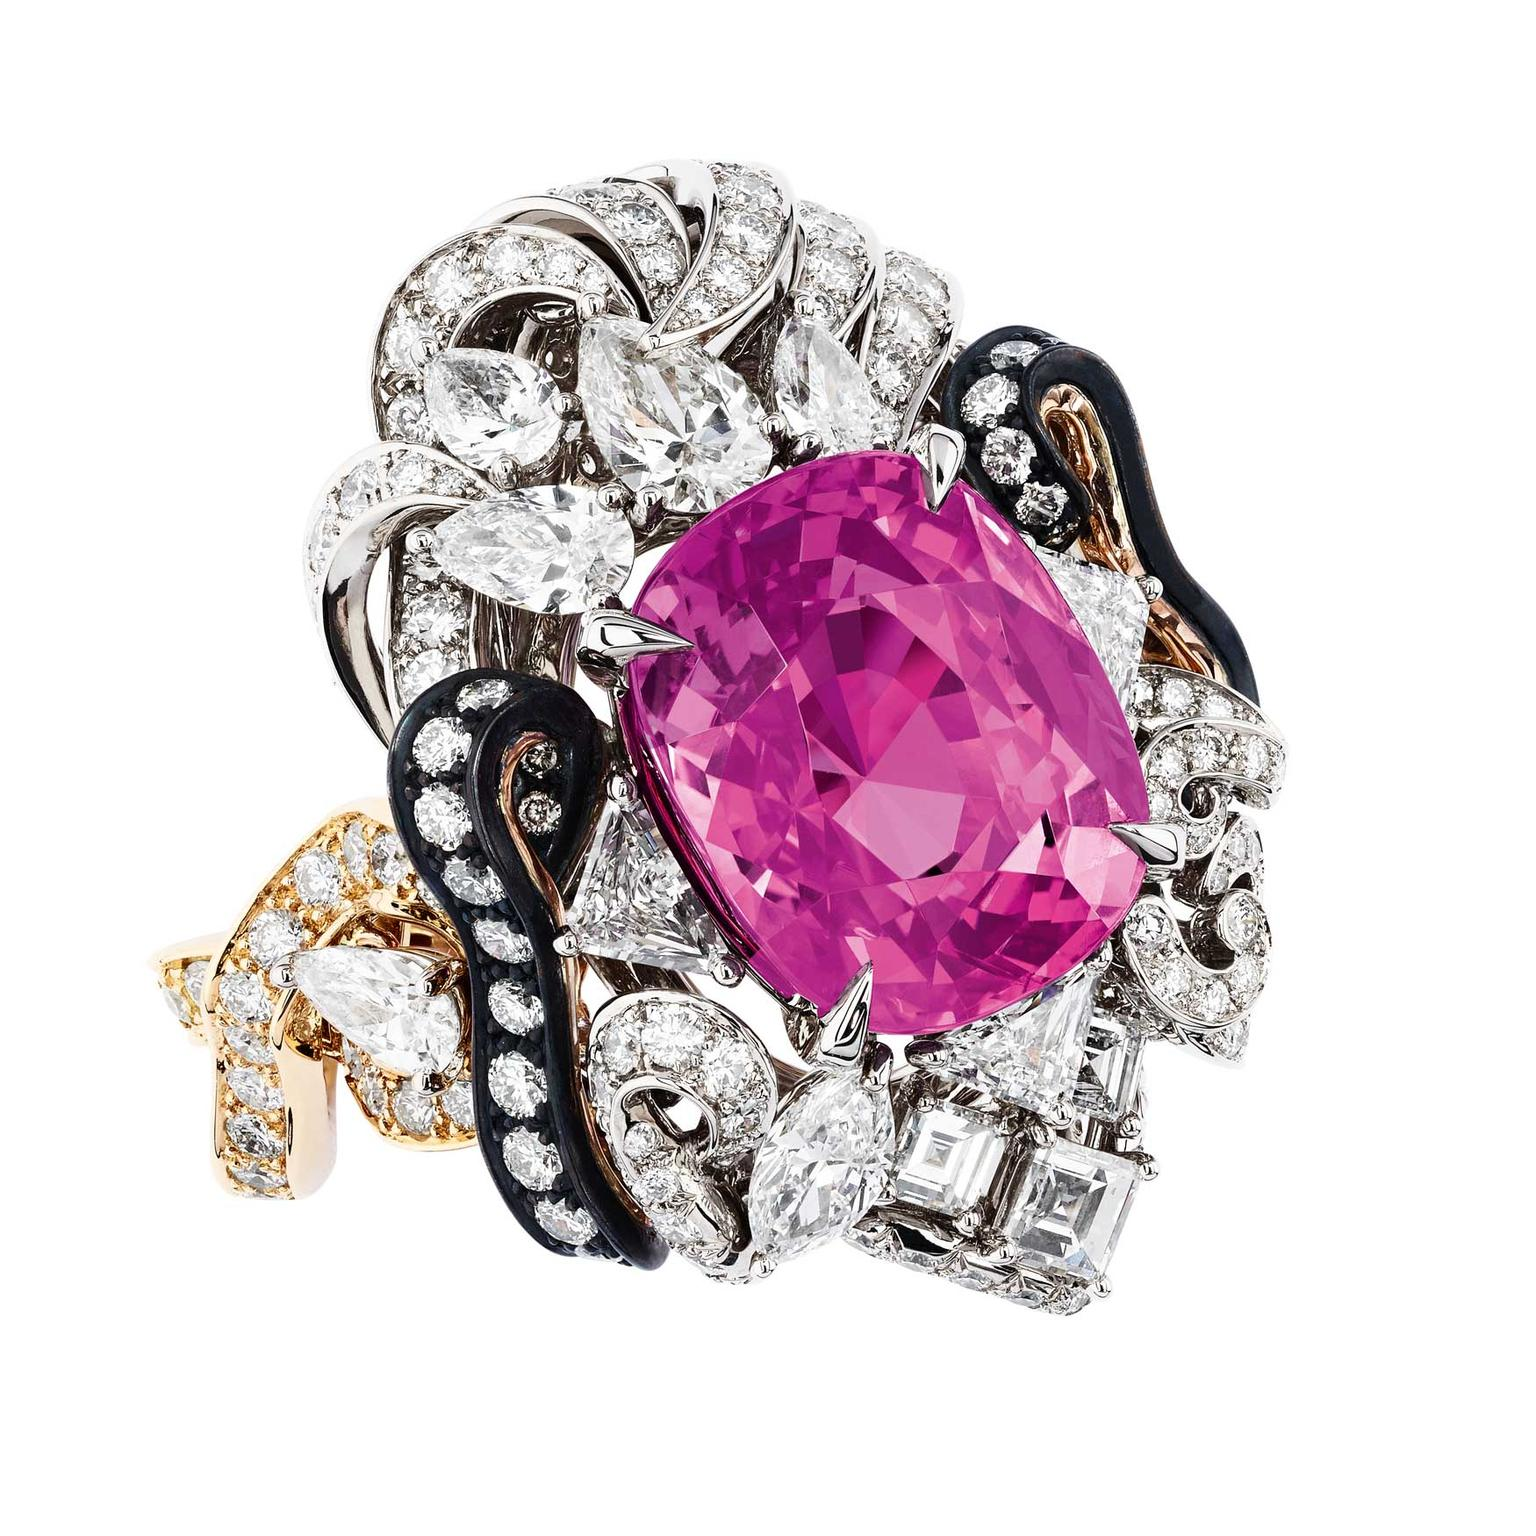 Cushion-cut pink sapphire engagement ring | Fabergé | The Jewellery ...